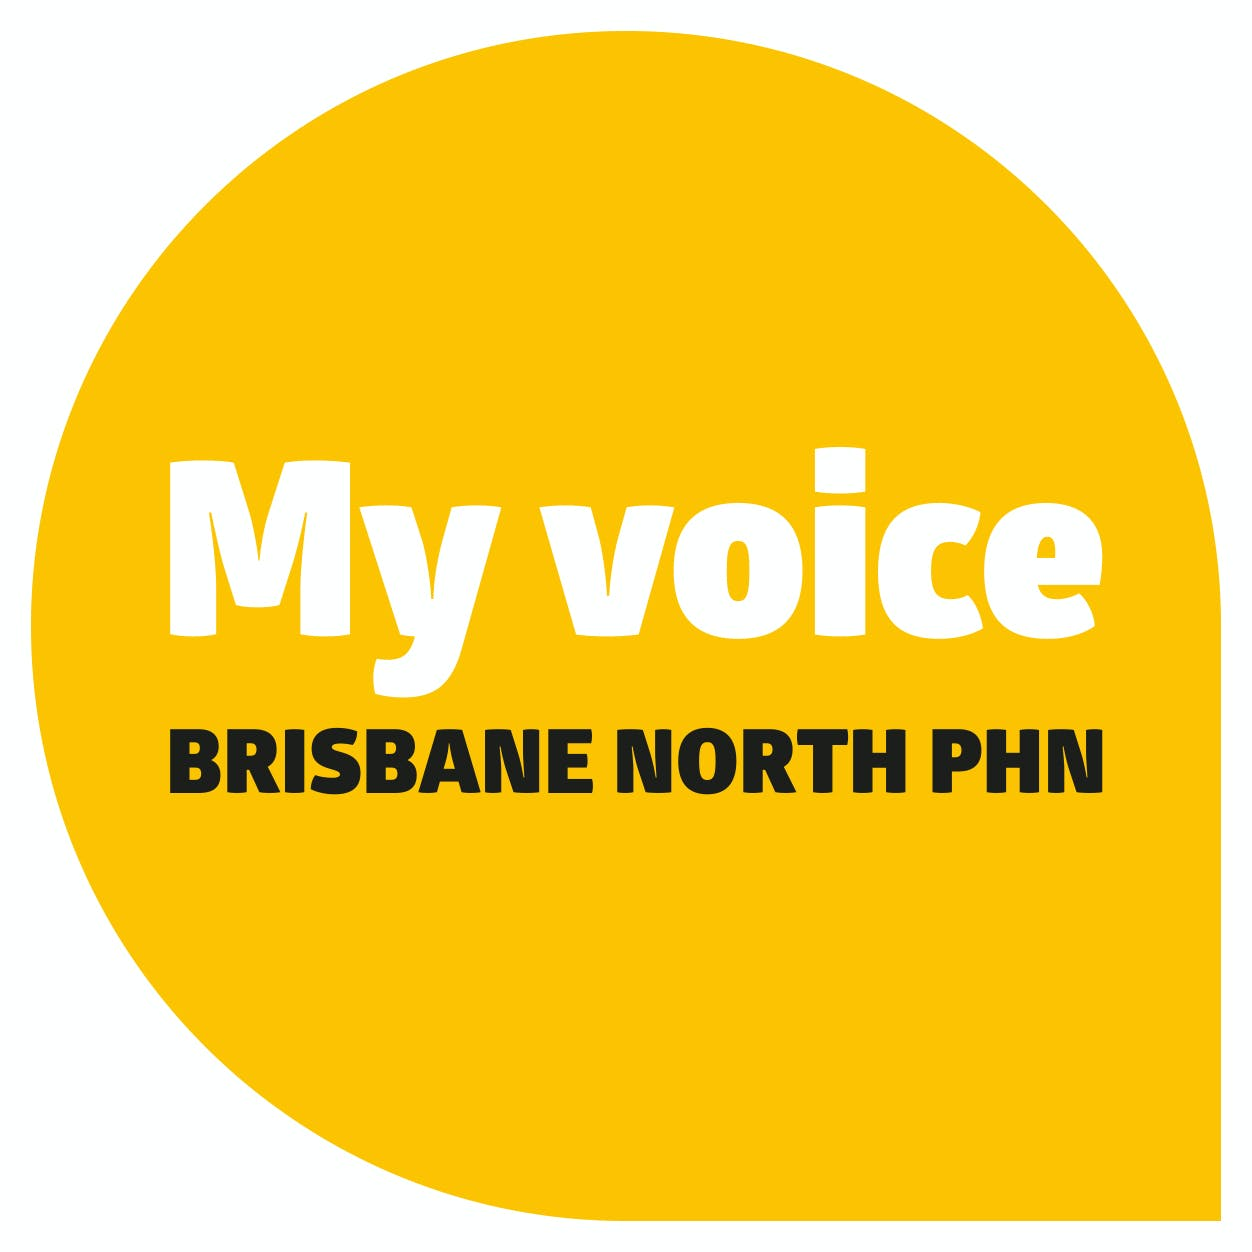 My voice Brisbane North PHN